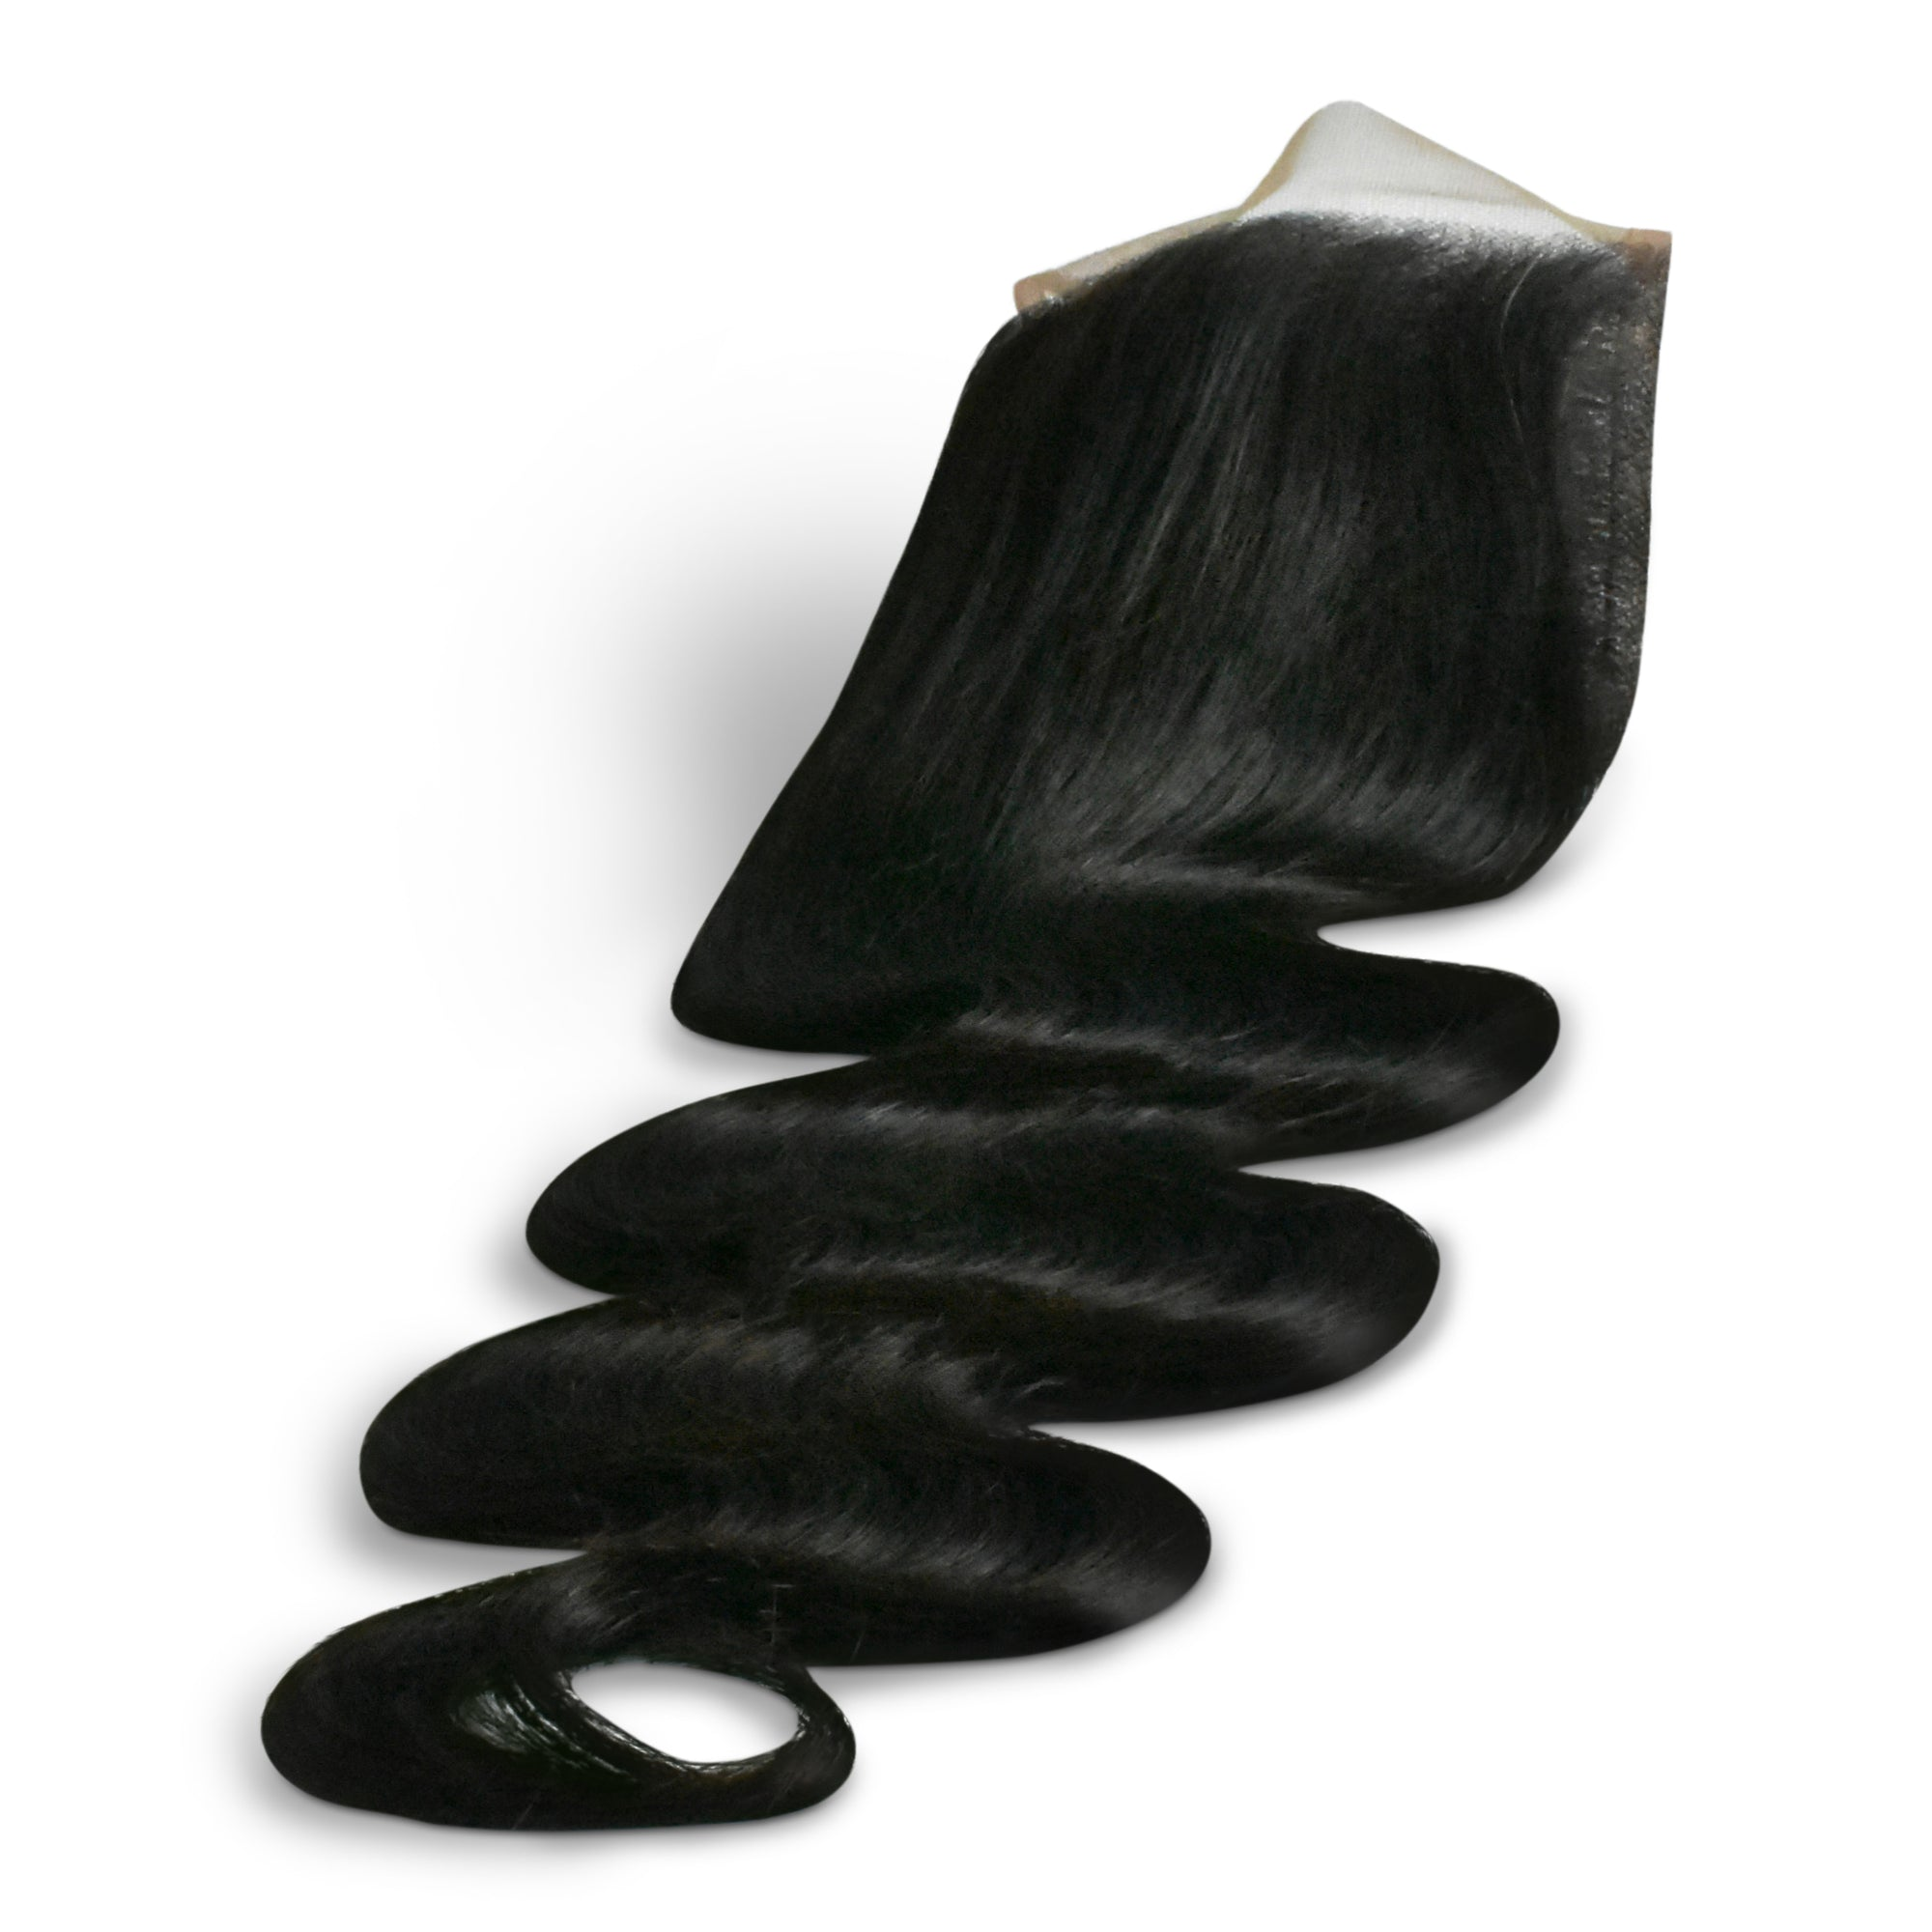 Our body wave closures are made to impress!